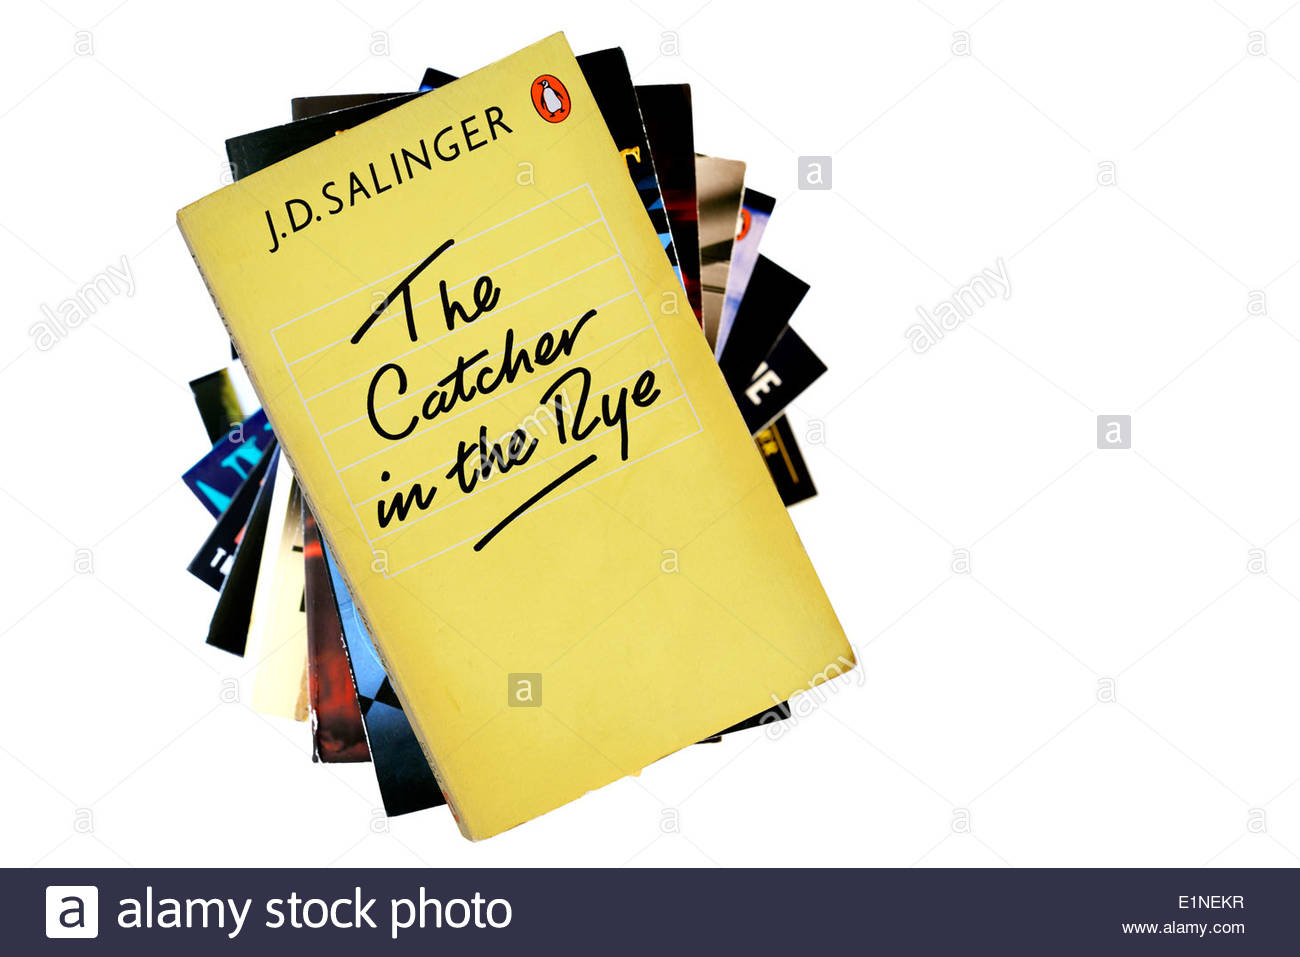 The Catcher in the Rye, J D Salinger paperback title, stacked used books, England - Stock Image